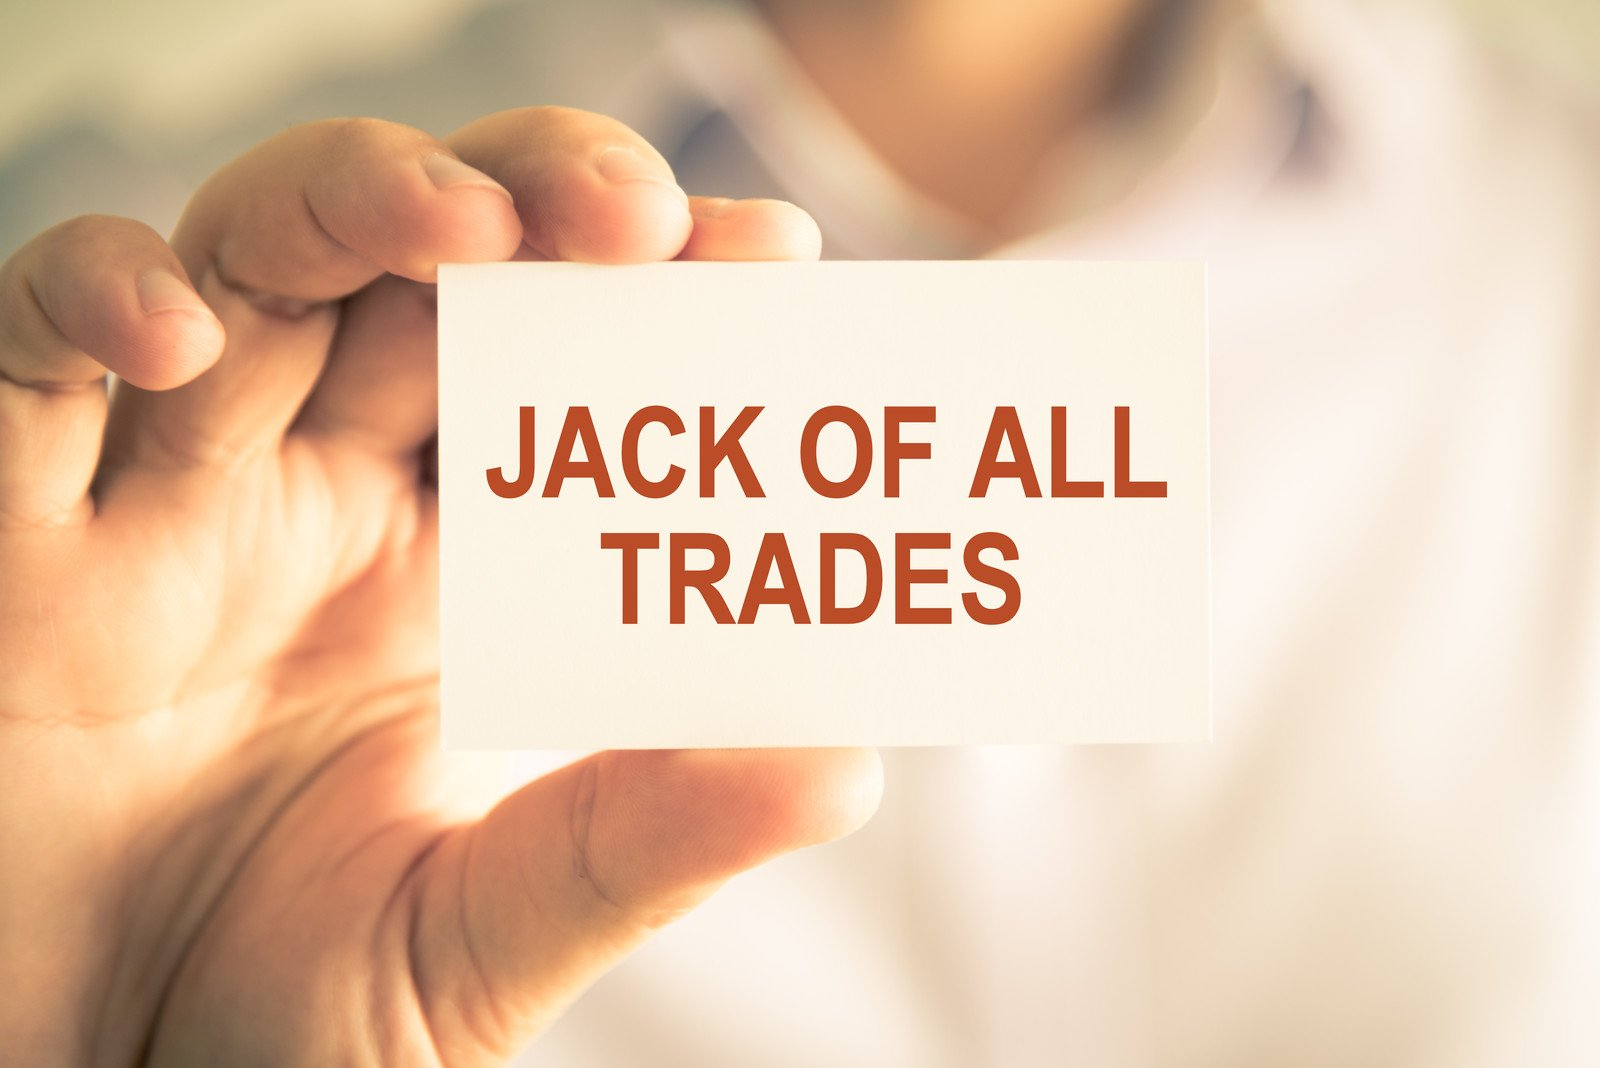 executive resumes  avoid the jack of all trades dilemma